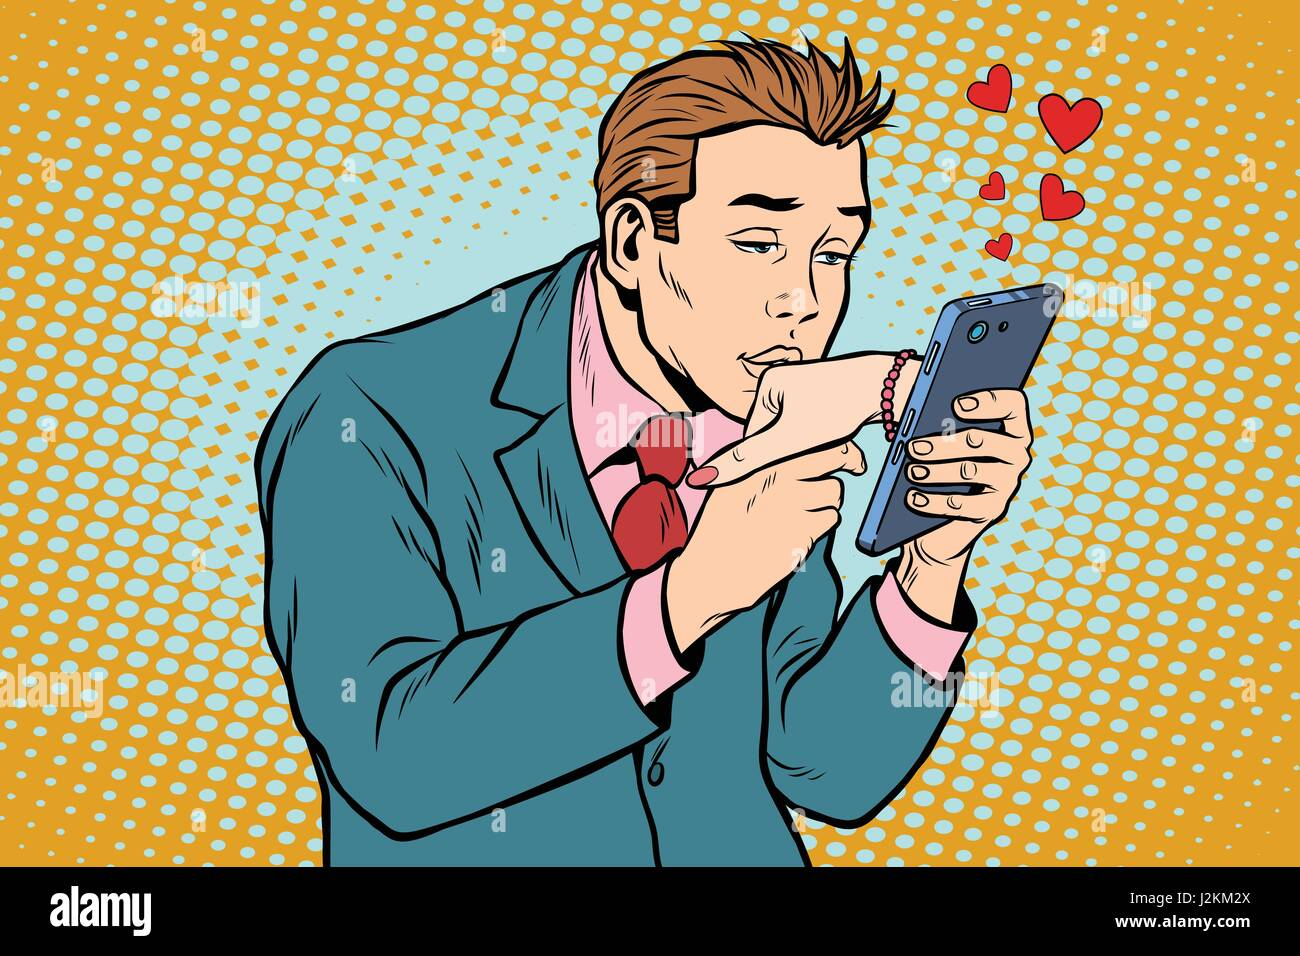 online date and love a man kisses a womans hand via smartphone - Stock Image